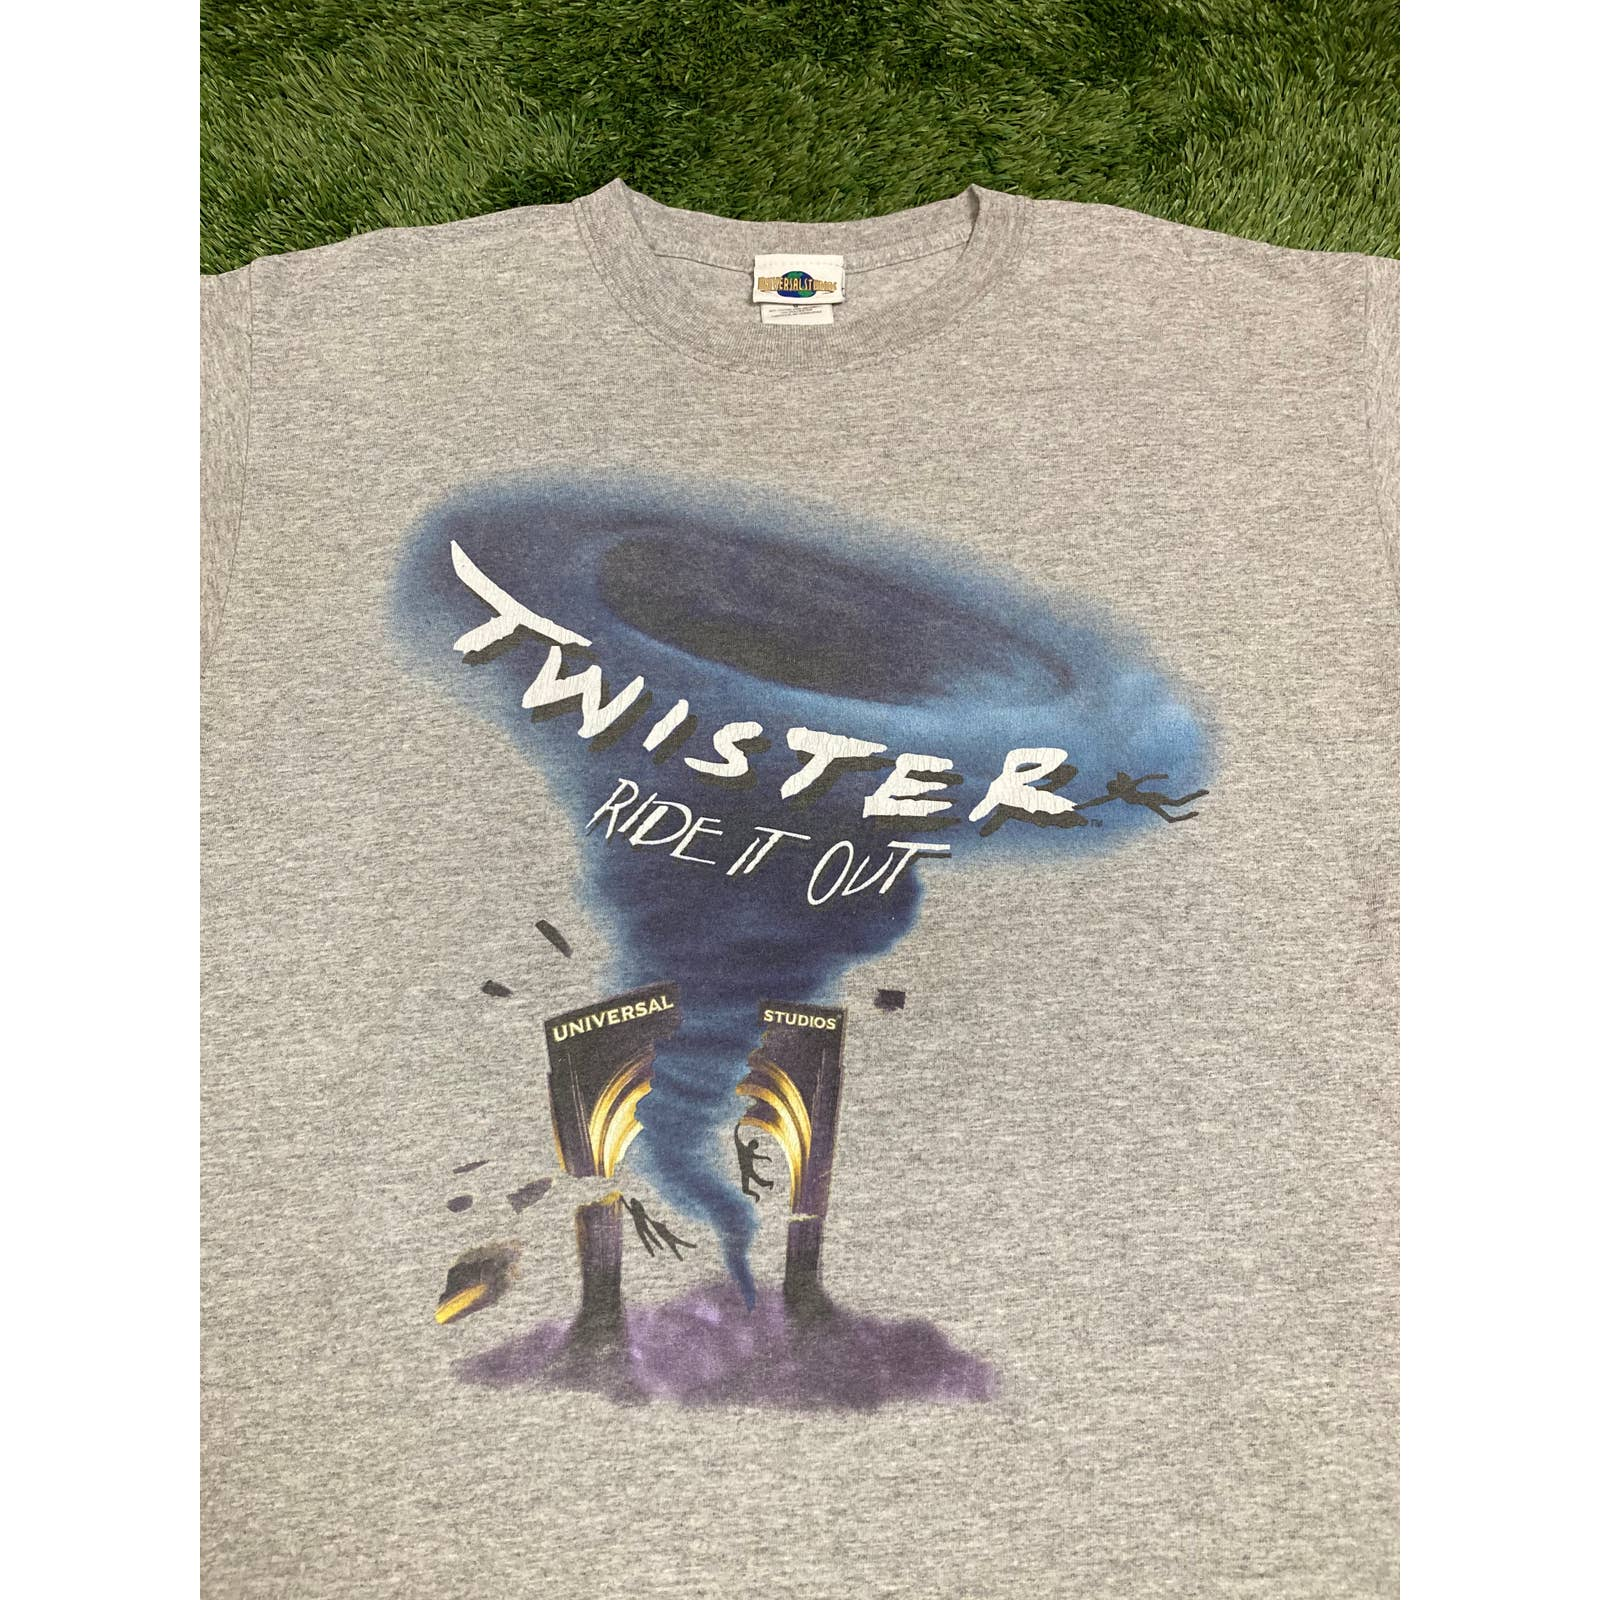 Rare 1996 Twister Movie Promo T-Shirt Warner Brothers Double Sided New US size